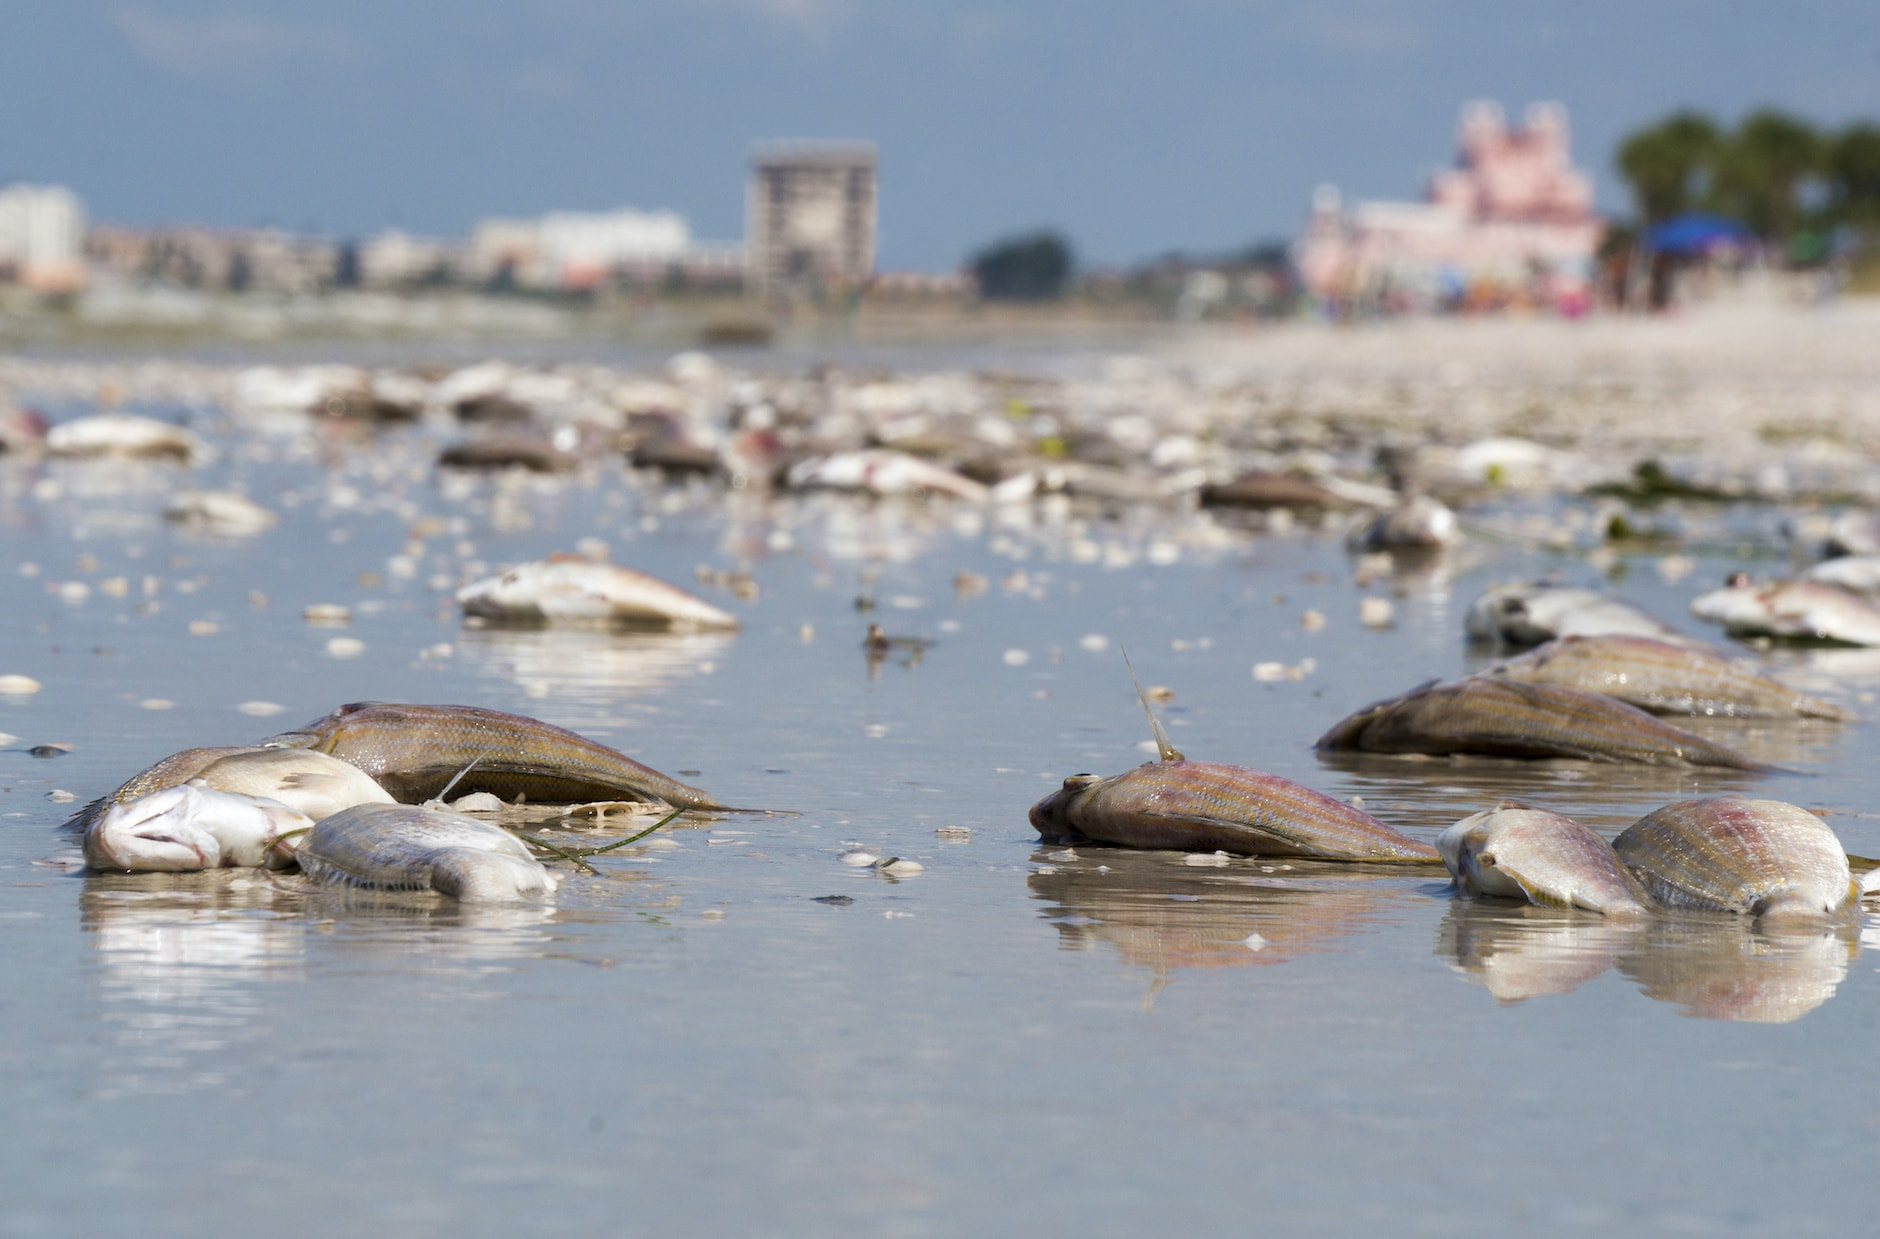 Dead fish on the shore from red tide